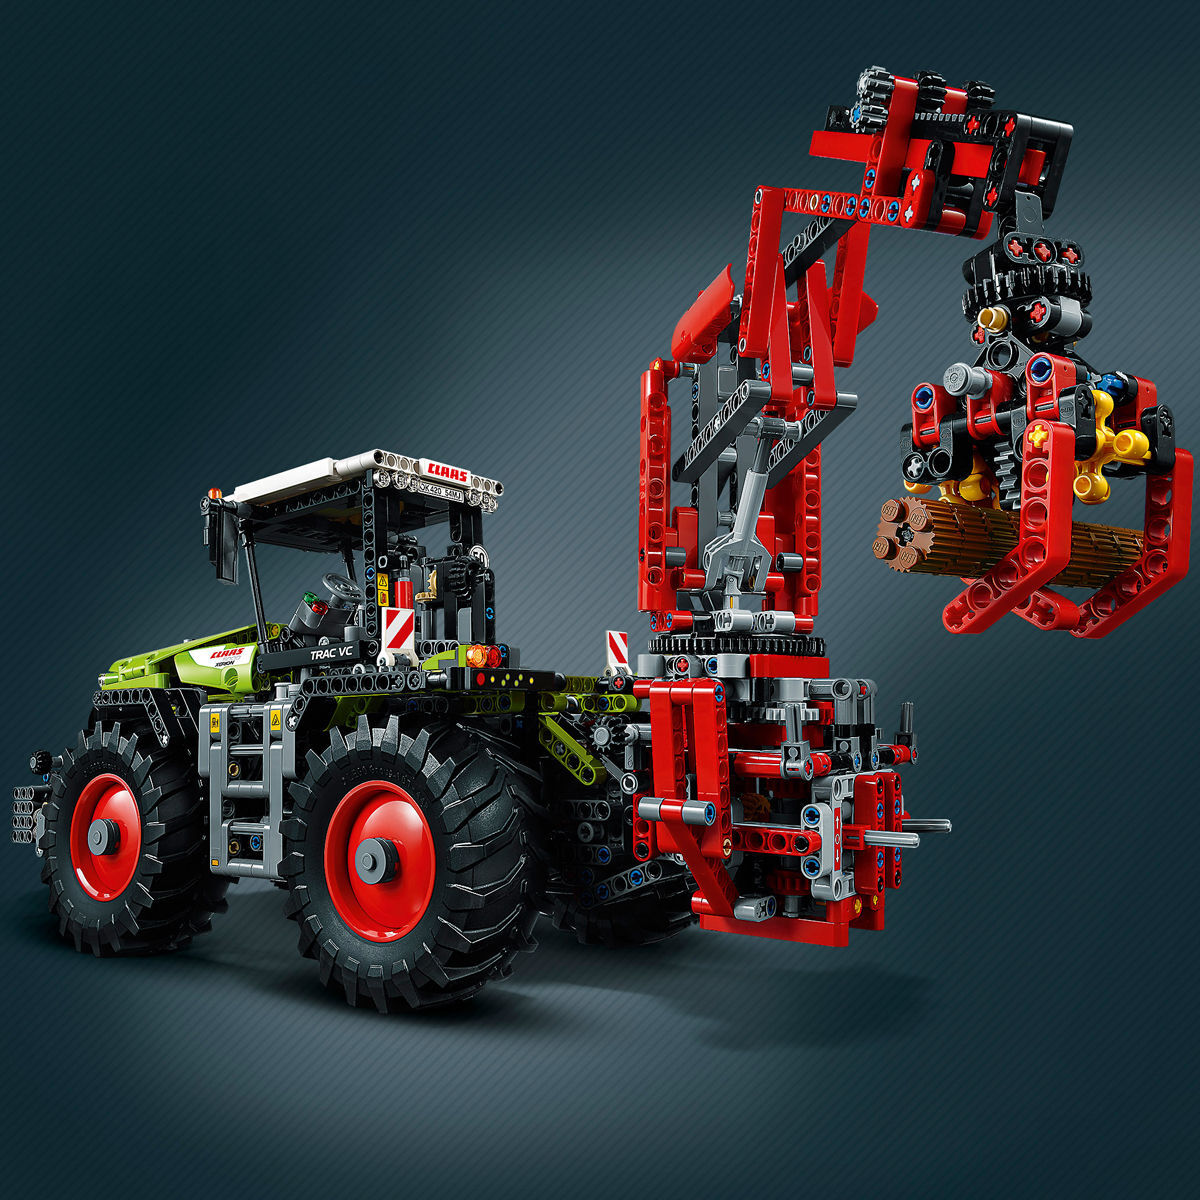 lego technic 42054 claas xerion 5000 trac vc karstadt. Black Bedroom Furniture Sets. Home Design Ideas